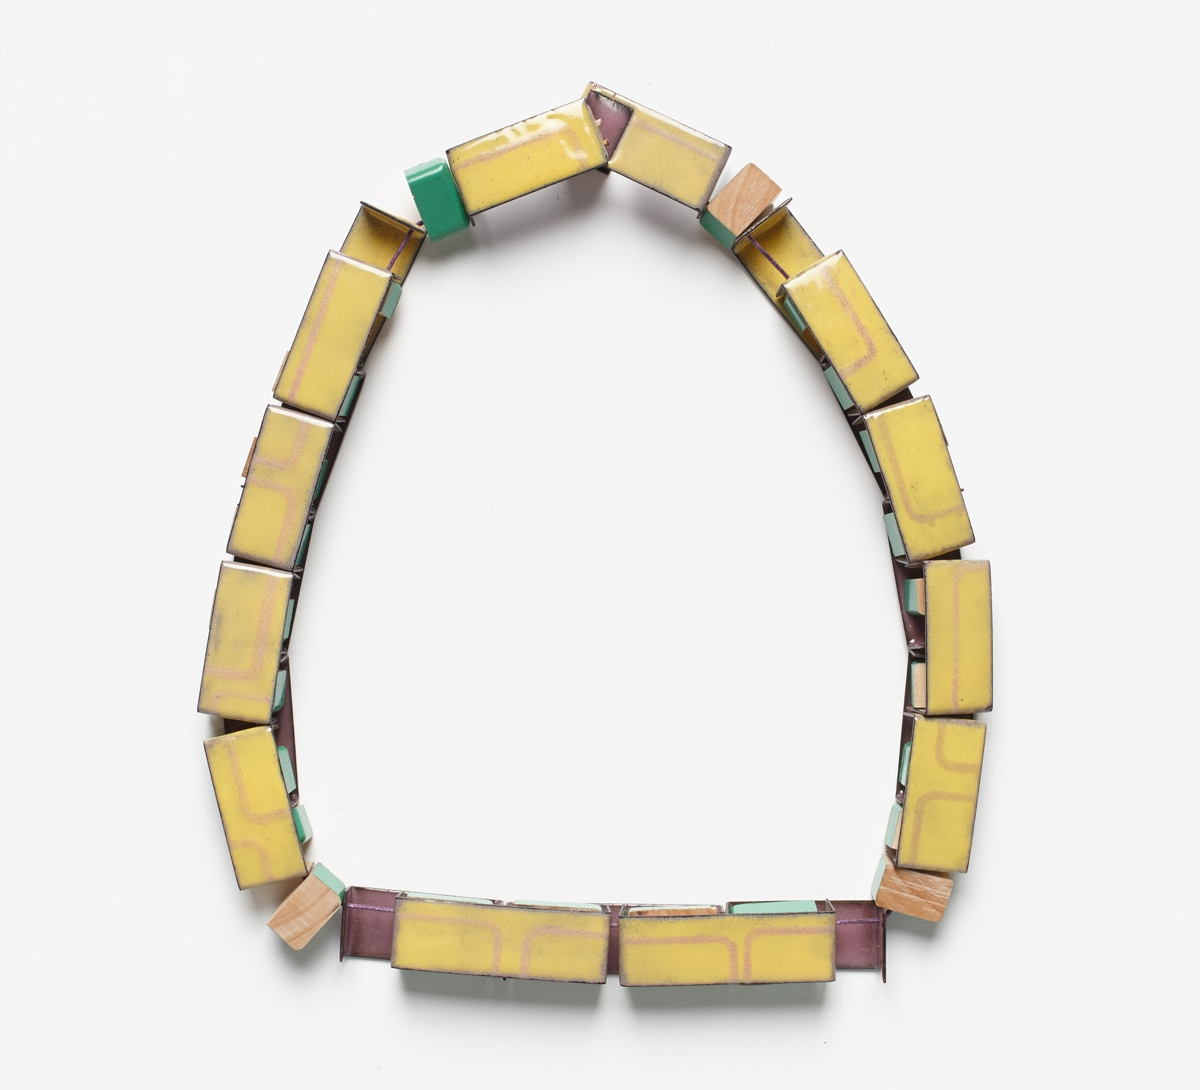 Interlocking Train , front view,   2013.   Deconstructed wooden block toy, copper, enamel, thread.  Photo by Jeremy Dillon.